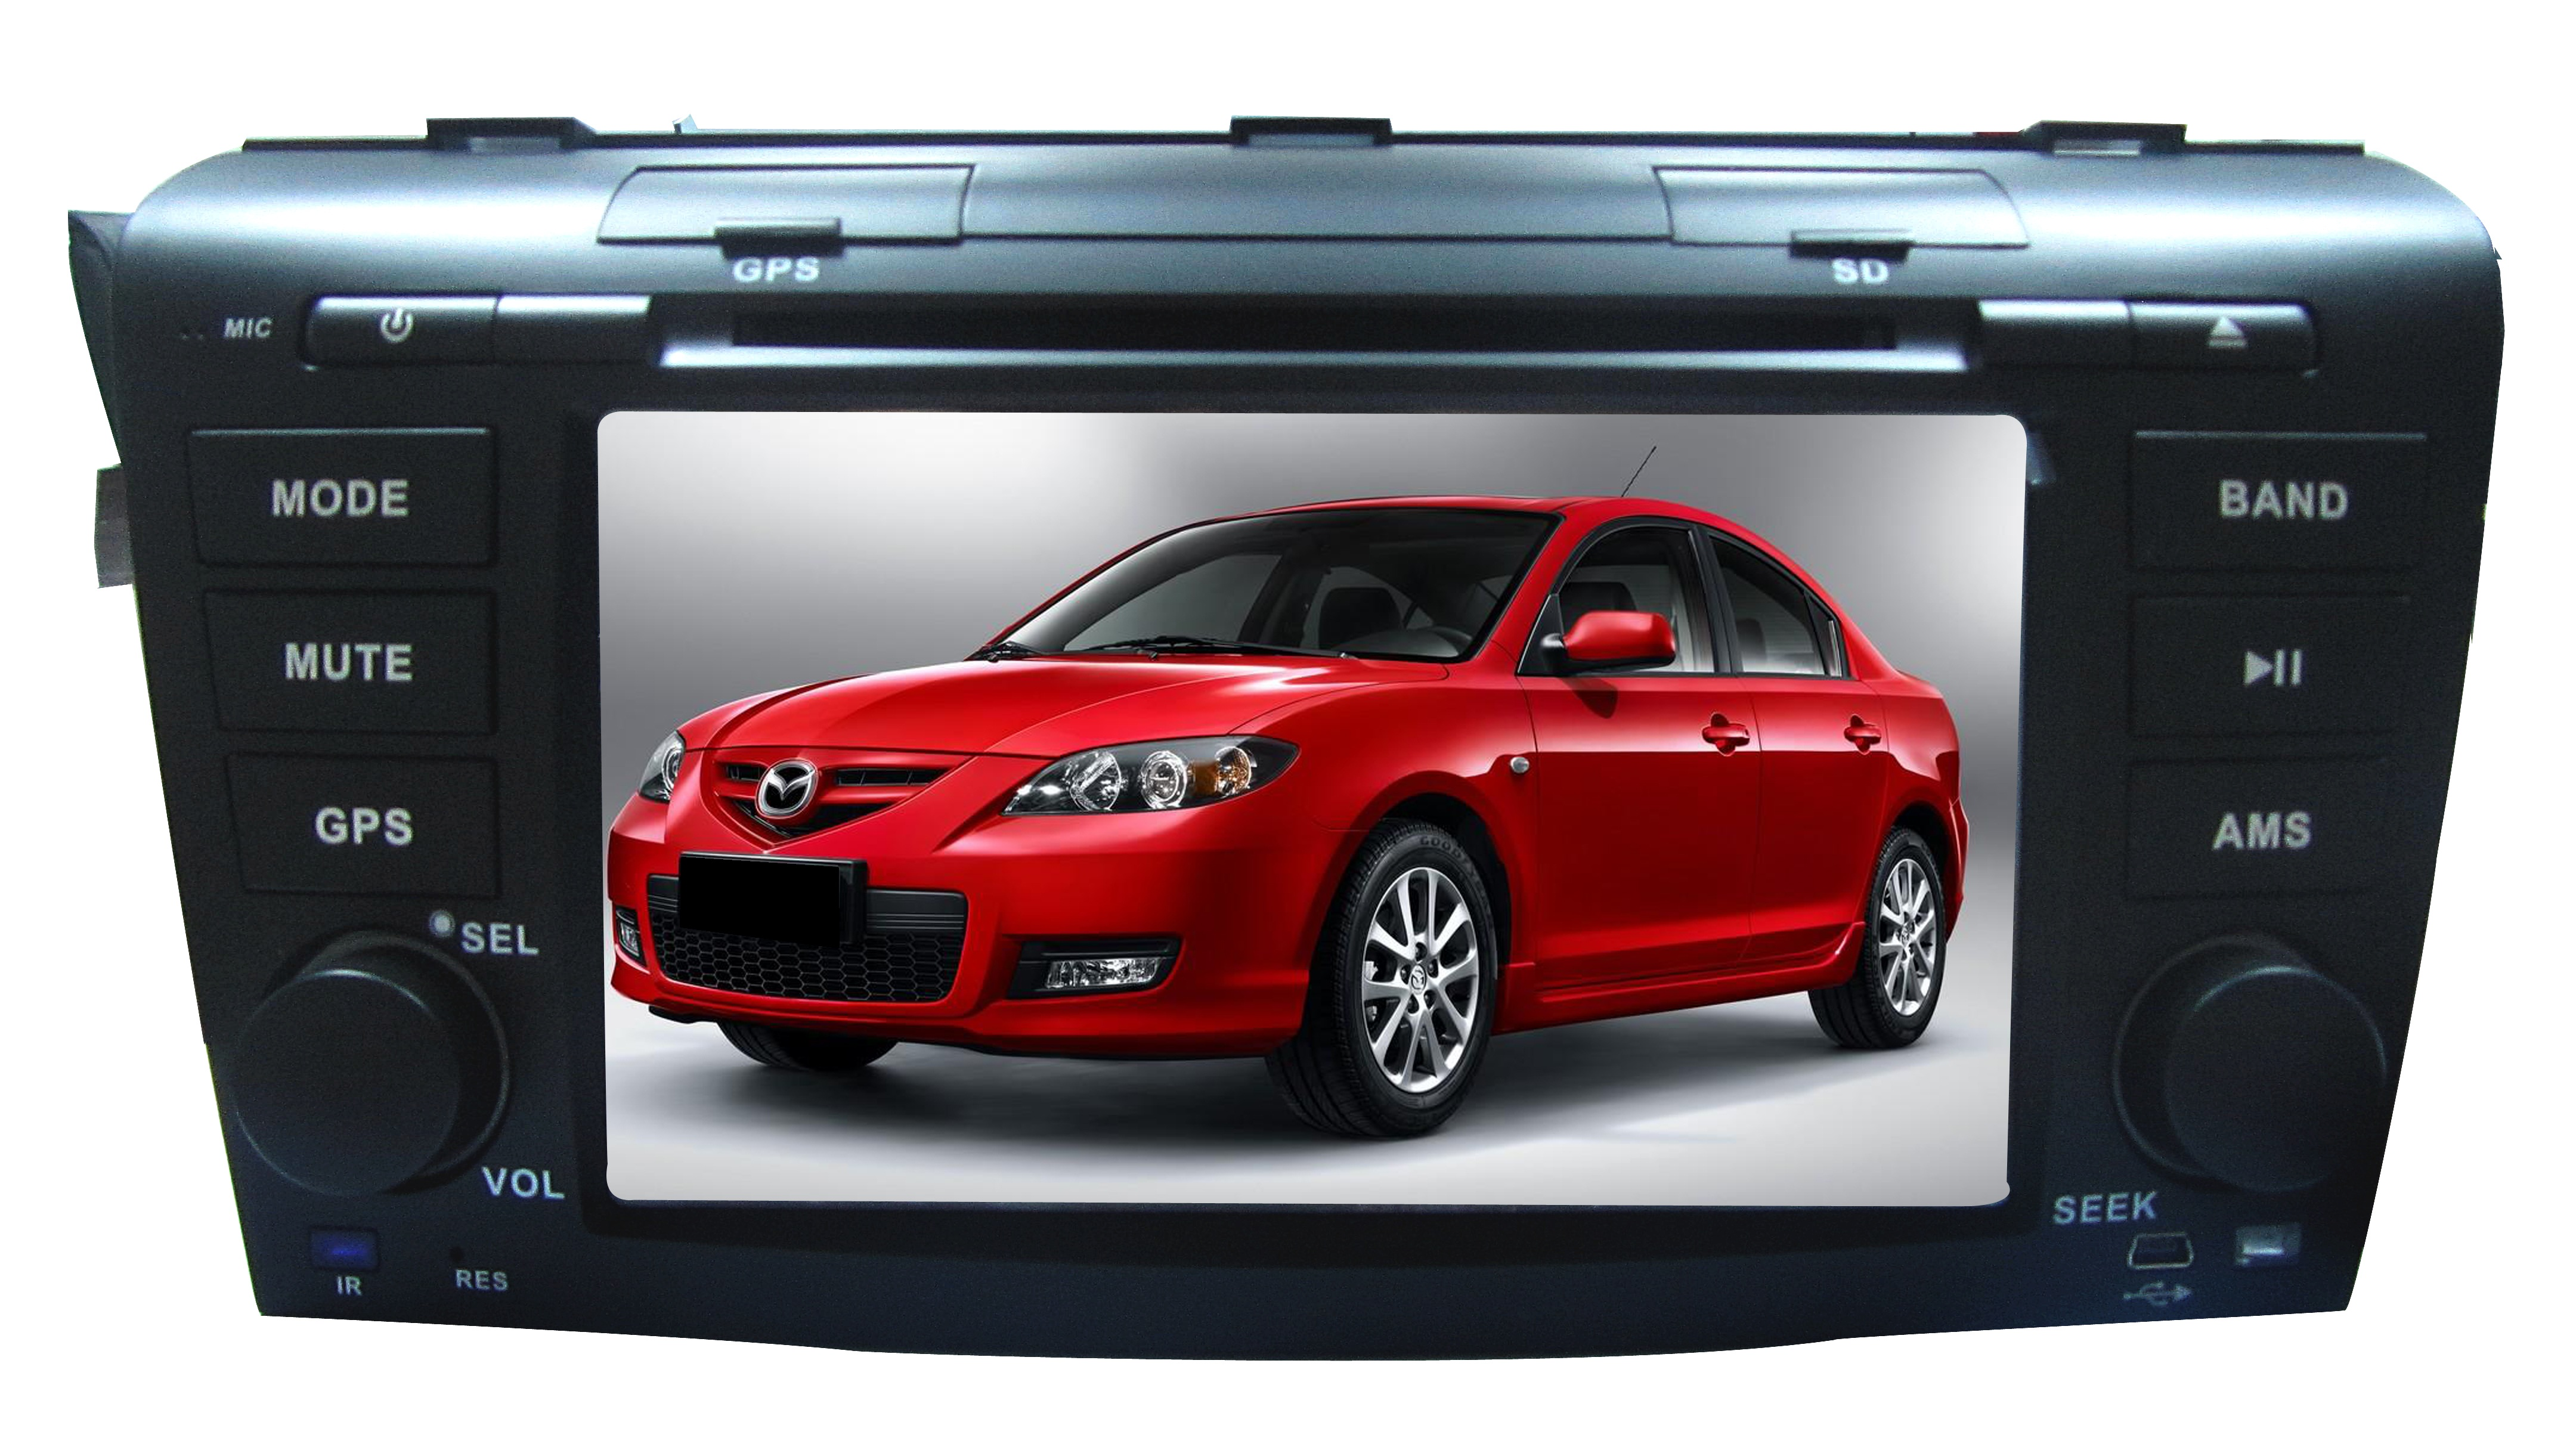 Autoradio GPS WIFI DVD CD Bluetooth USB SD pour MAZDA 3 (Windows processeur 1GHZ)